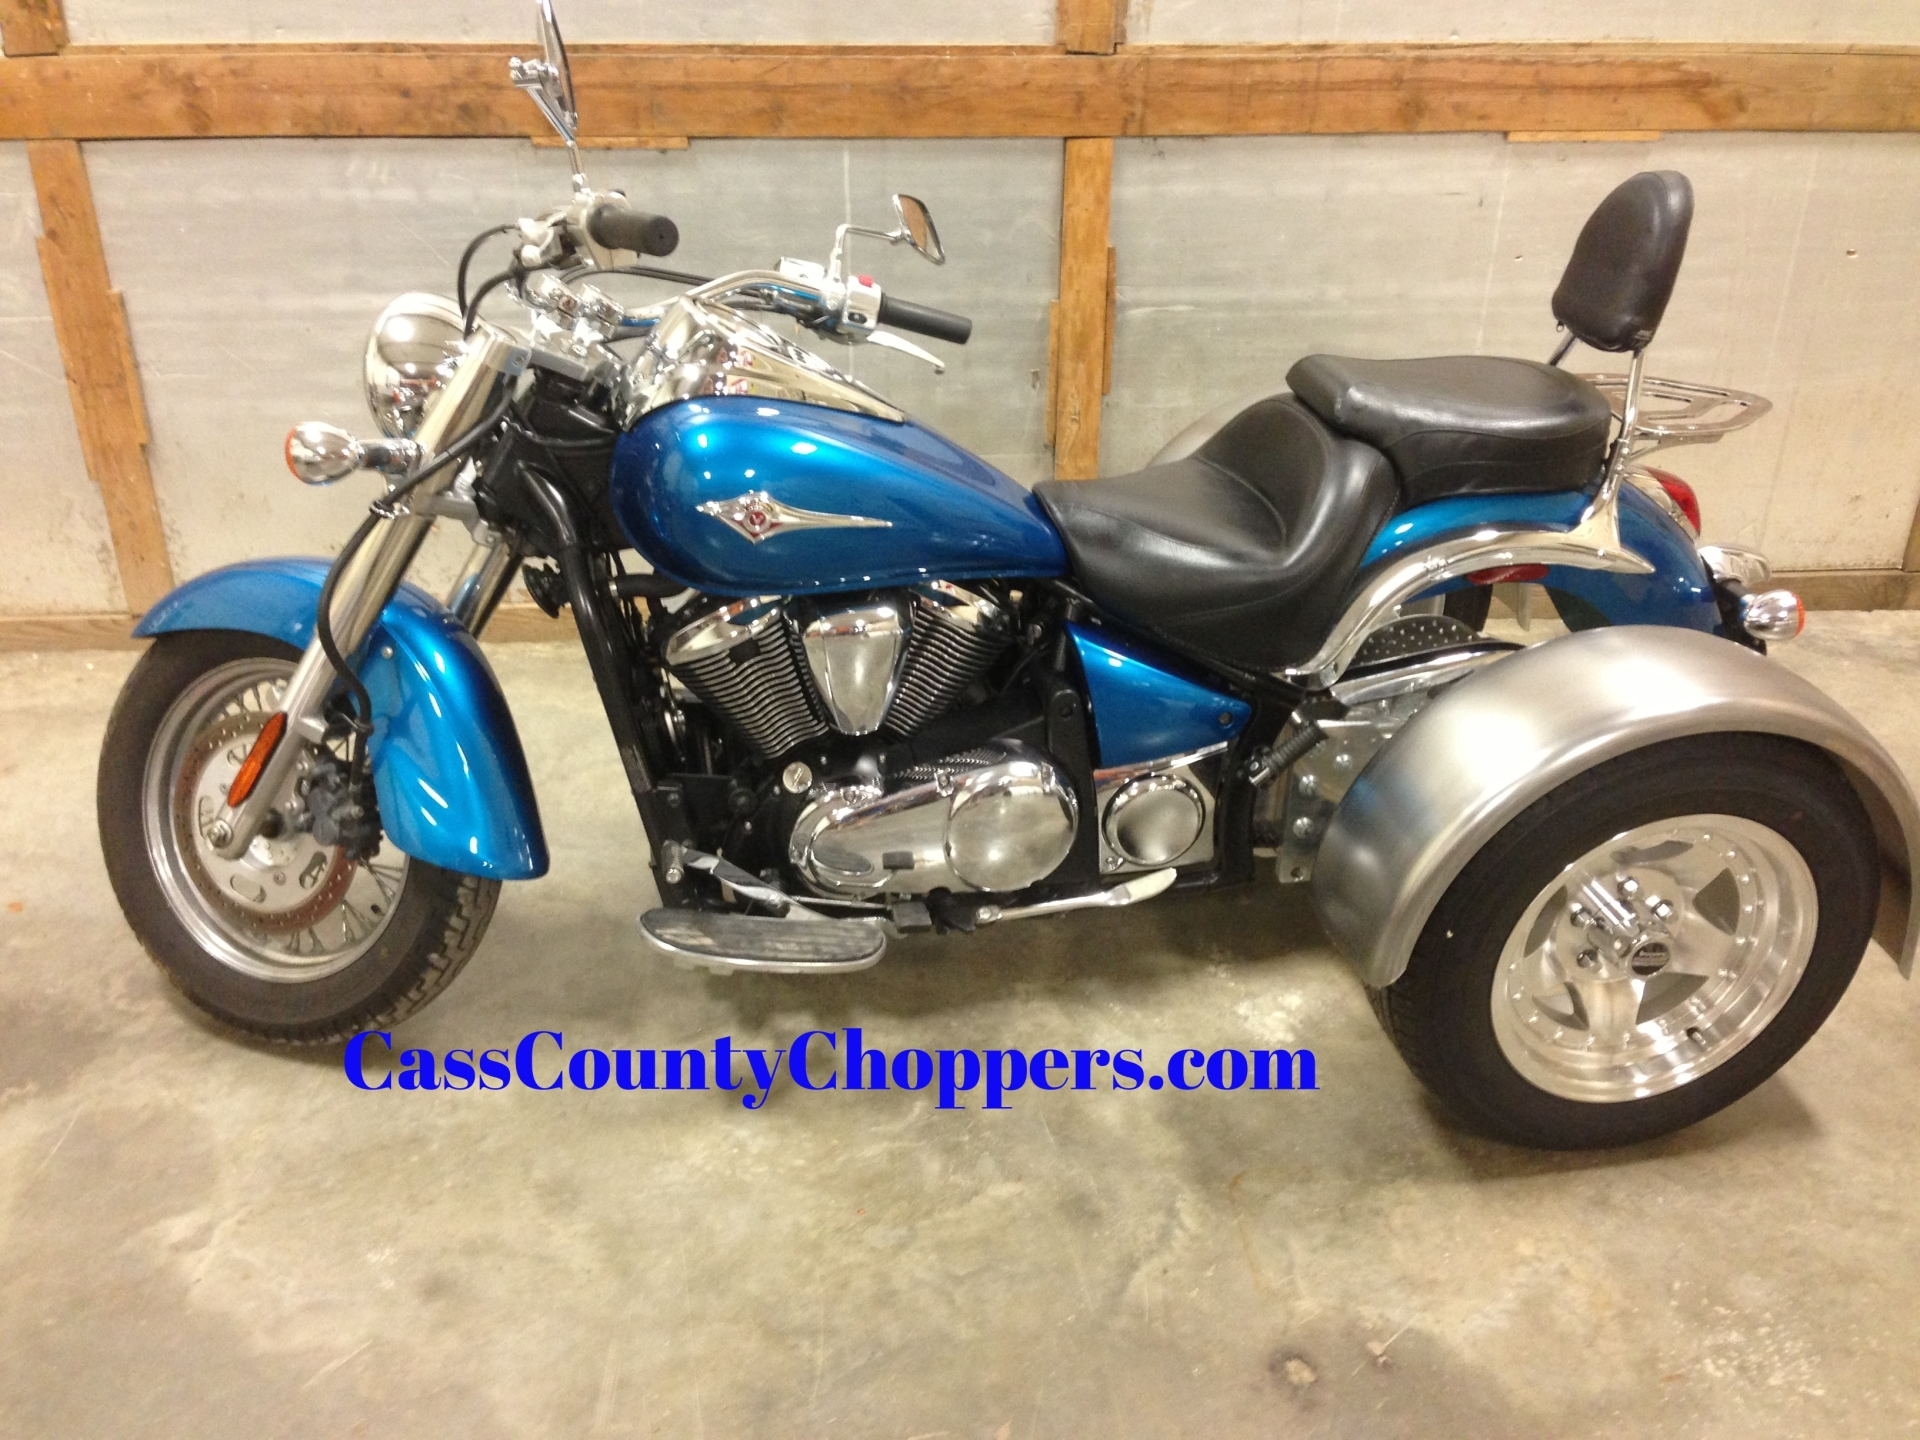 Light blue Kawasaki Vulcan 900 motorcycle converted to trike with conversion kit.